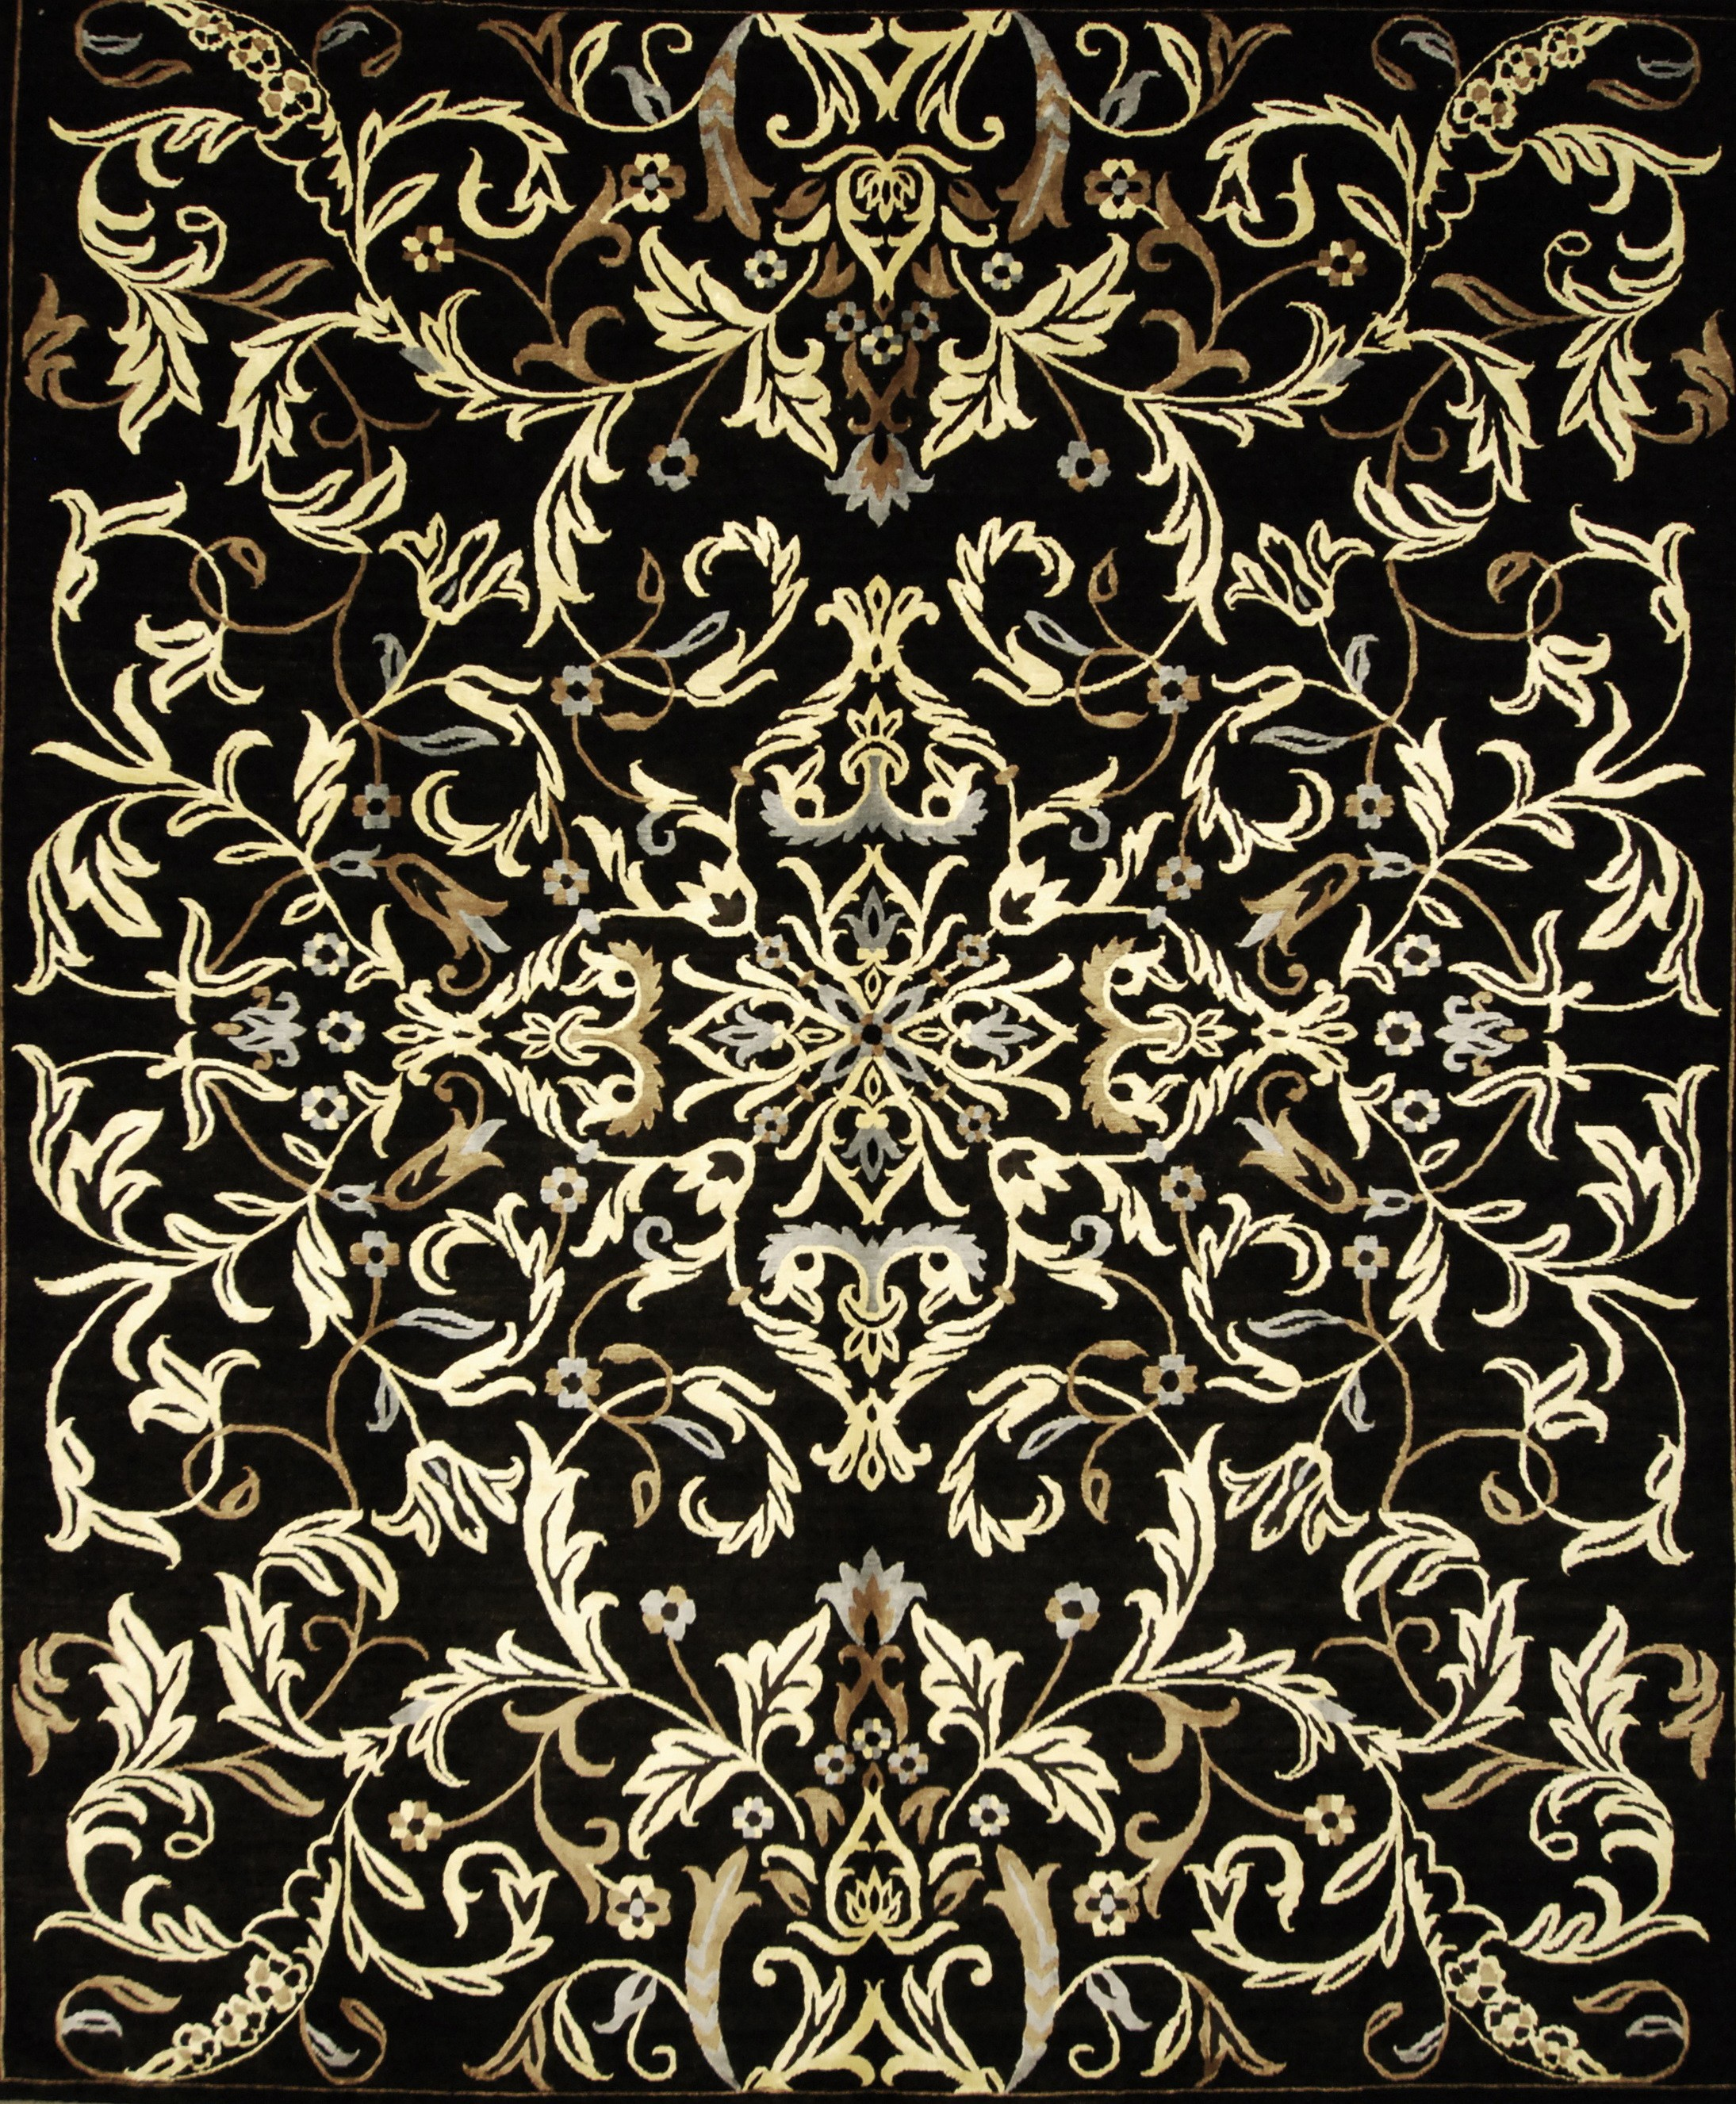 Royal Flower (Black & Gold Collection)